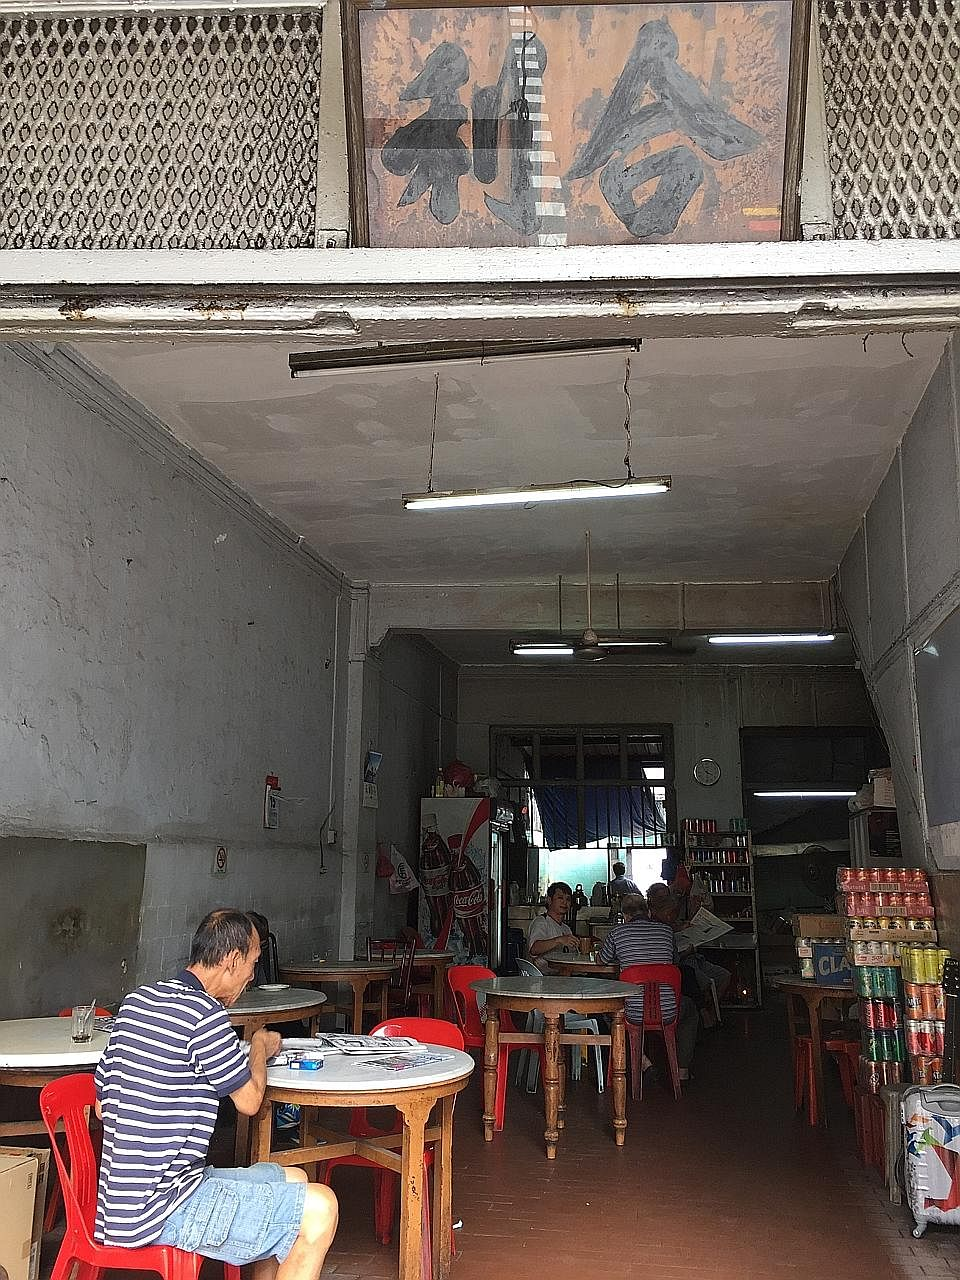 Hup Lee (main photo) is known for its kaya toast grilled over a charcoal fire, soft-boiled eggs and traditional sock-brewed coffee and tea (above).